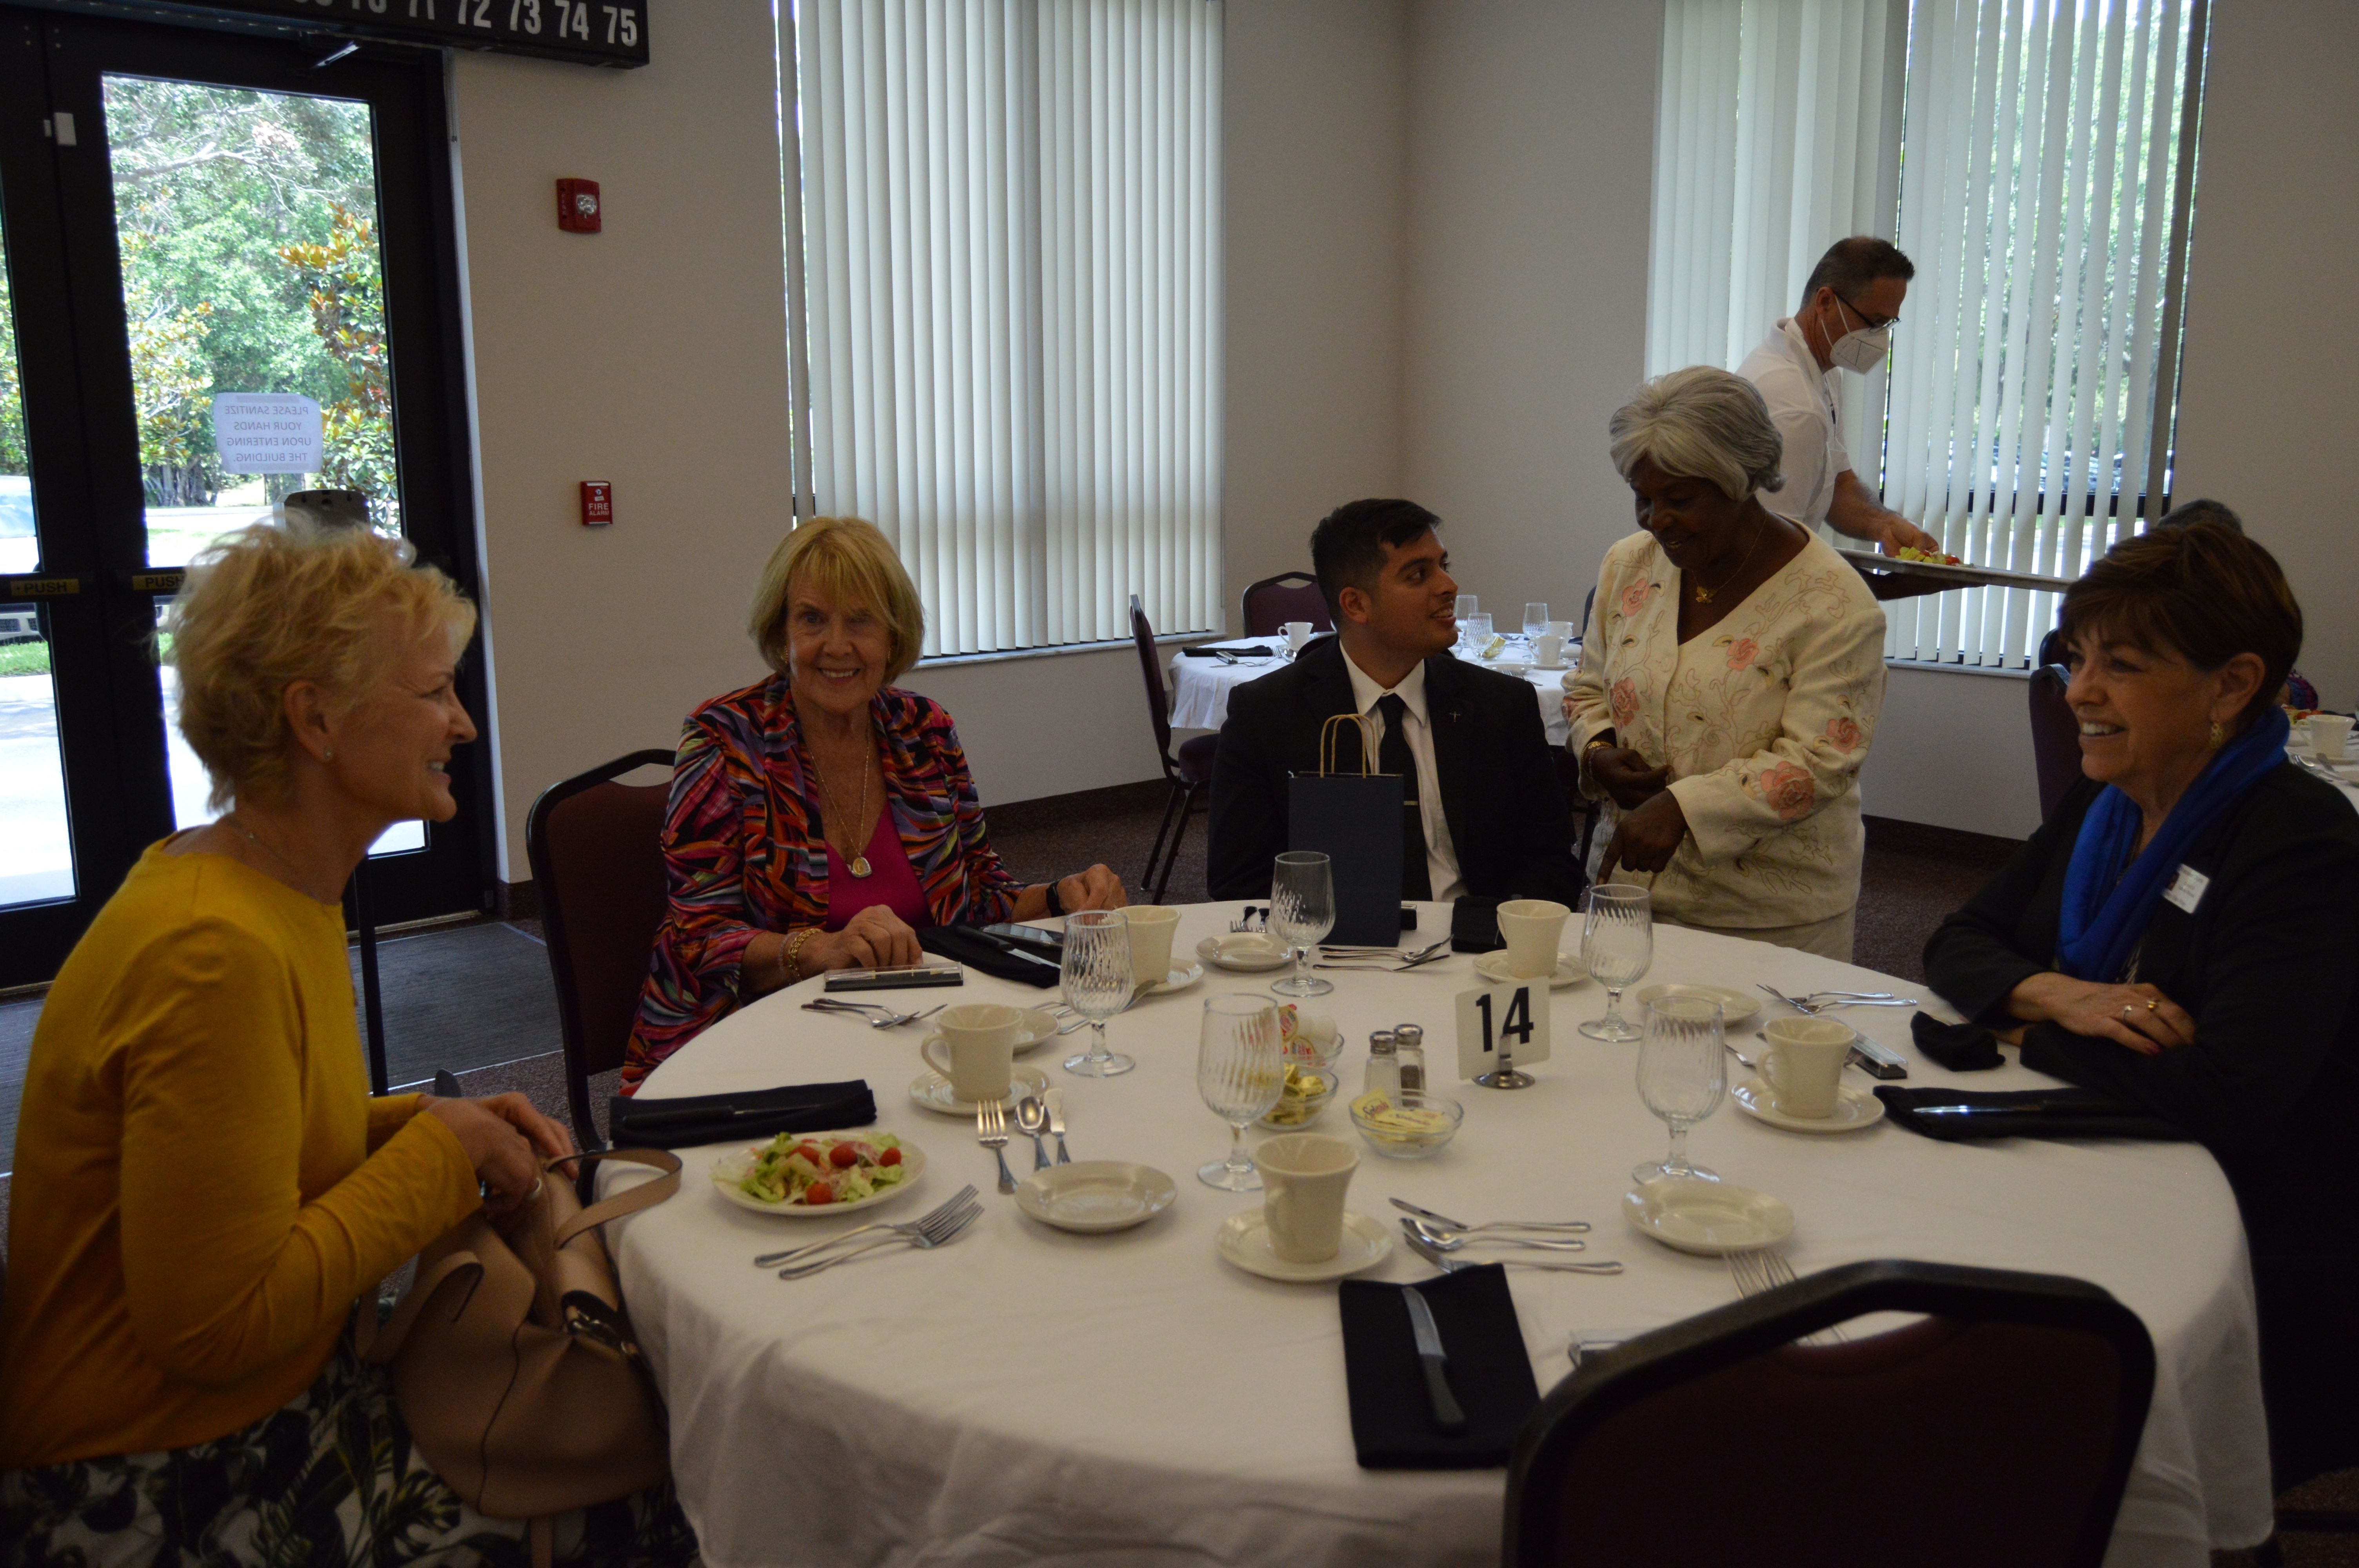 Sharing a meal and faith: seminarians tell vocation stories at annual luncheon